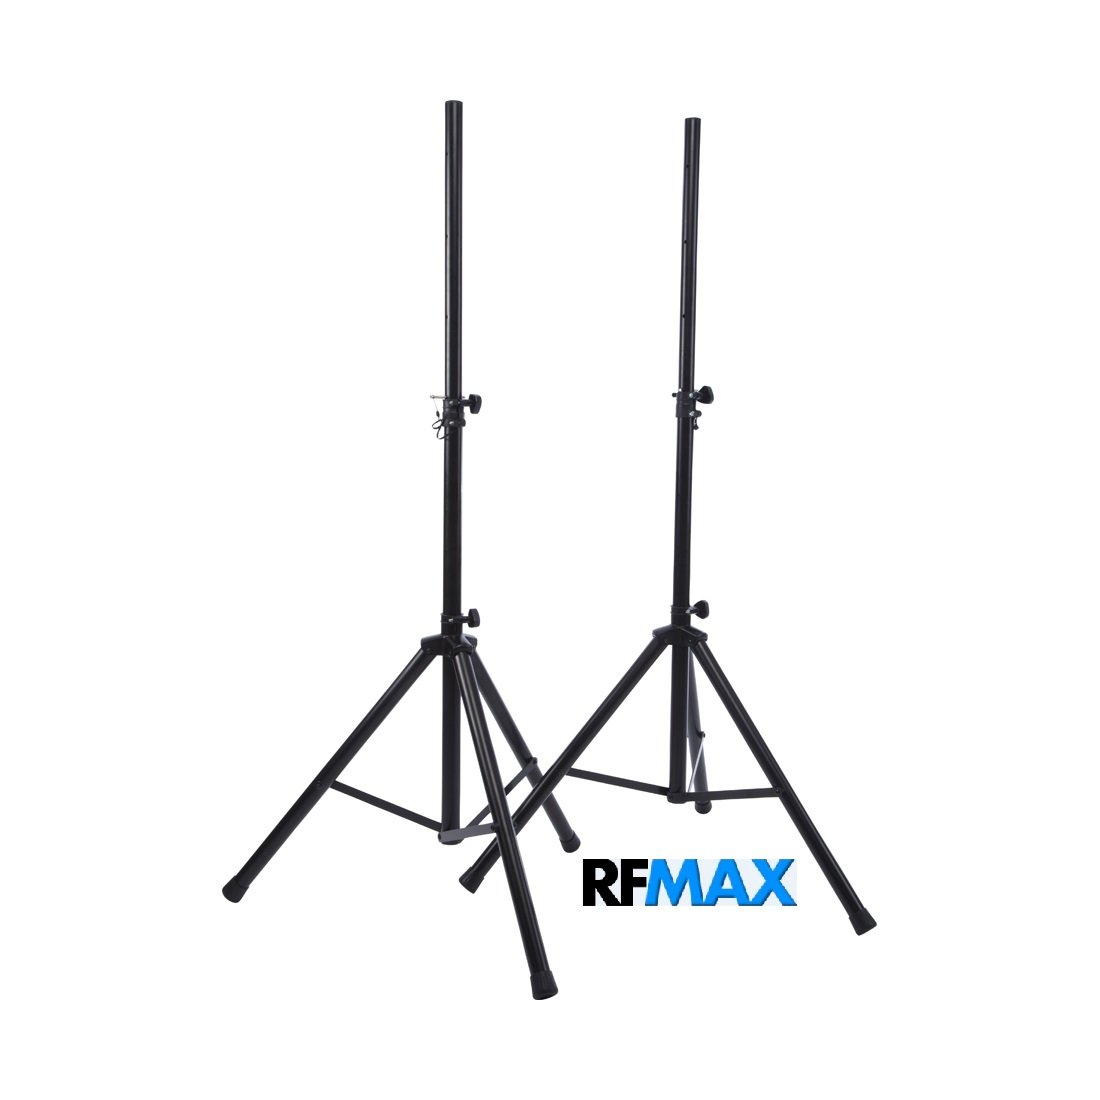 Heavy Duty Portable Antenna Mounting Tripod Stand   Adjustable 47-79 Inches Tall for RFID WiFi Panel Yagi or Omni